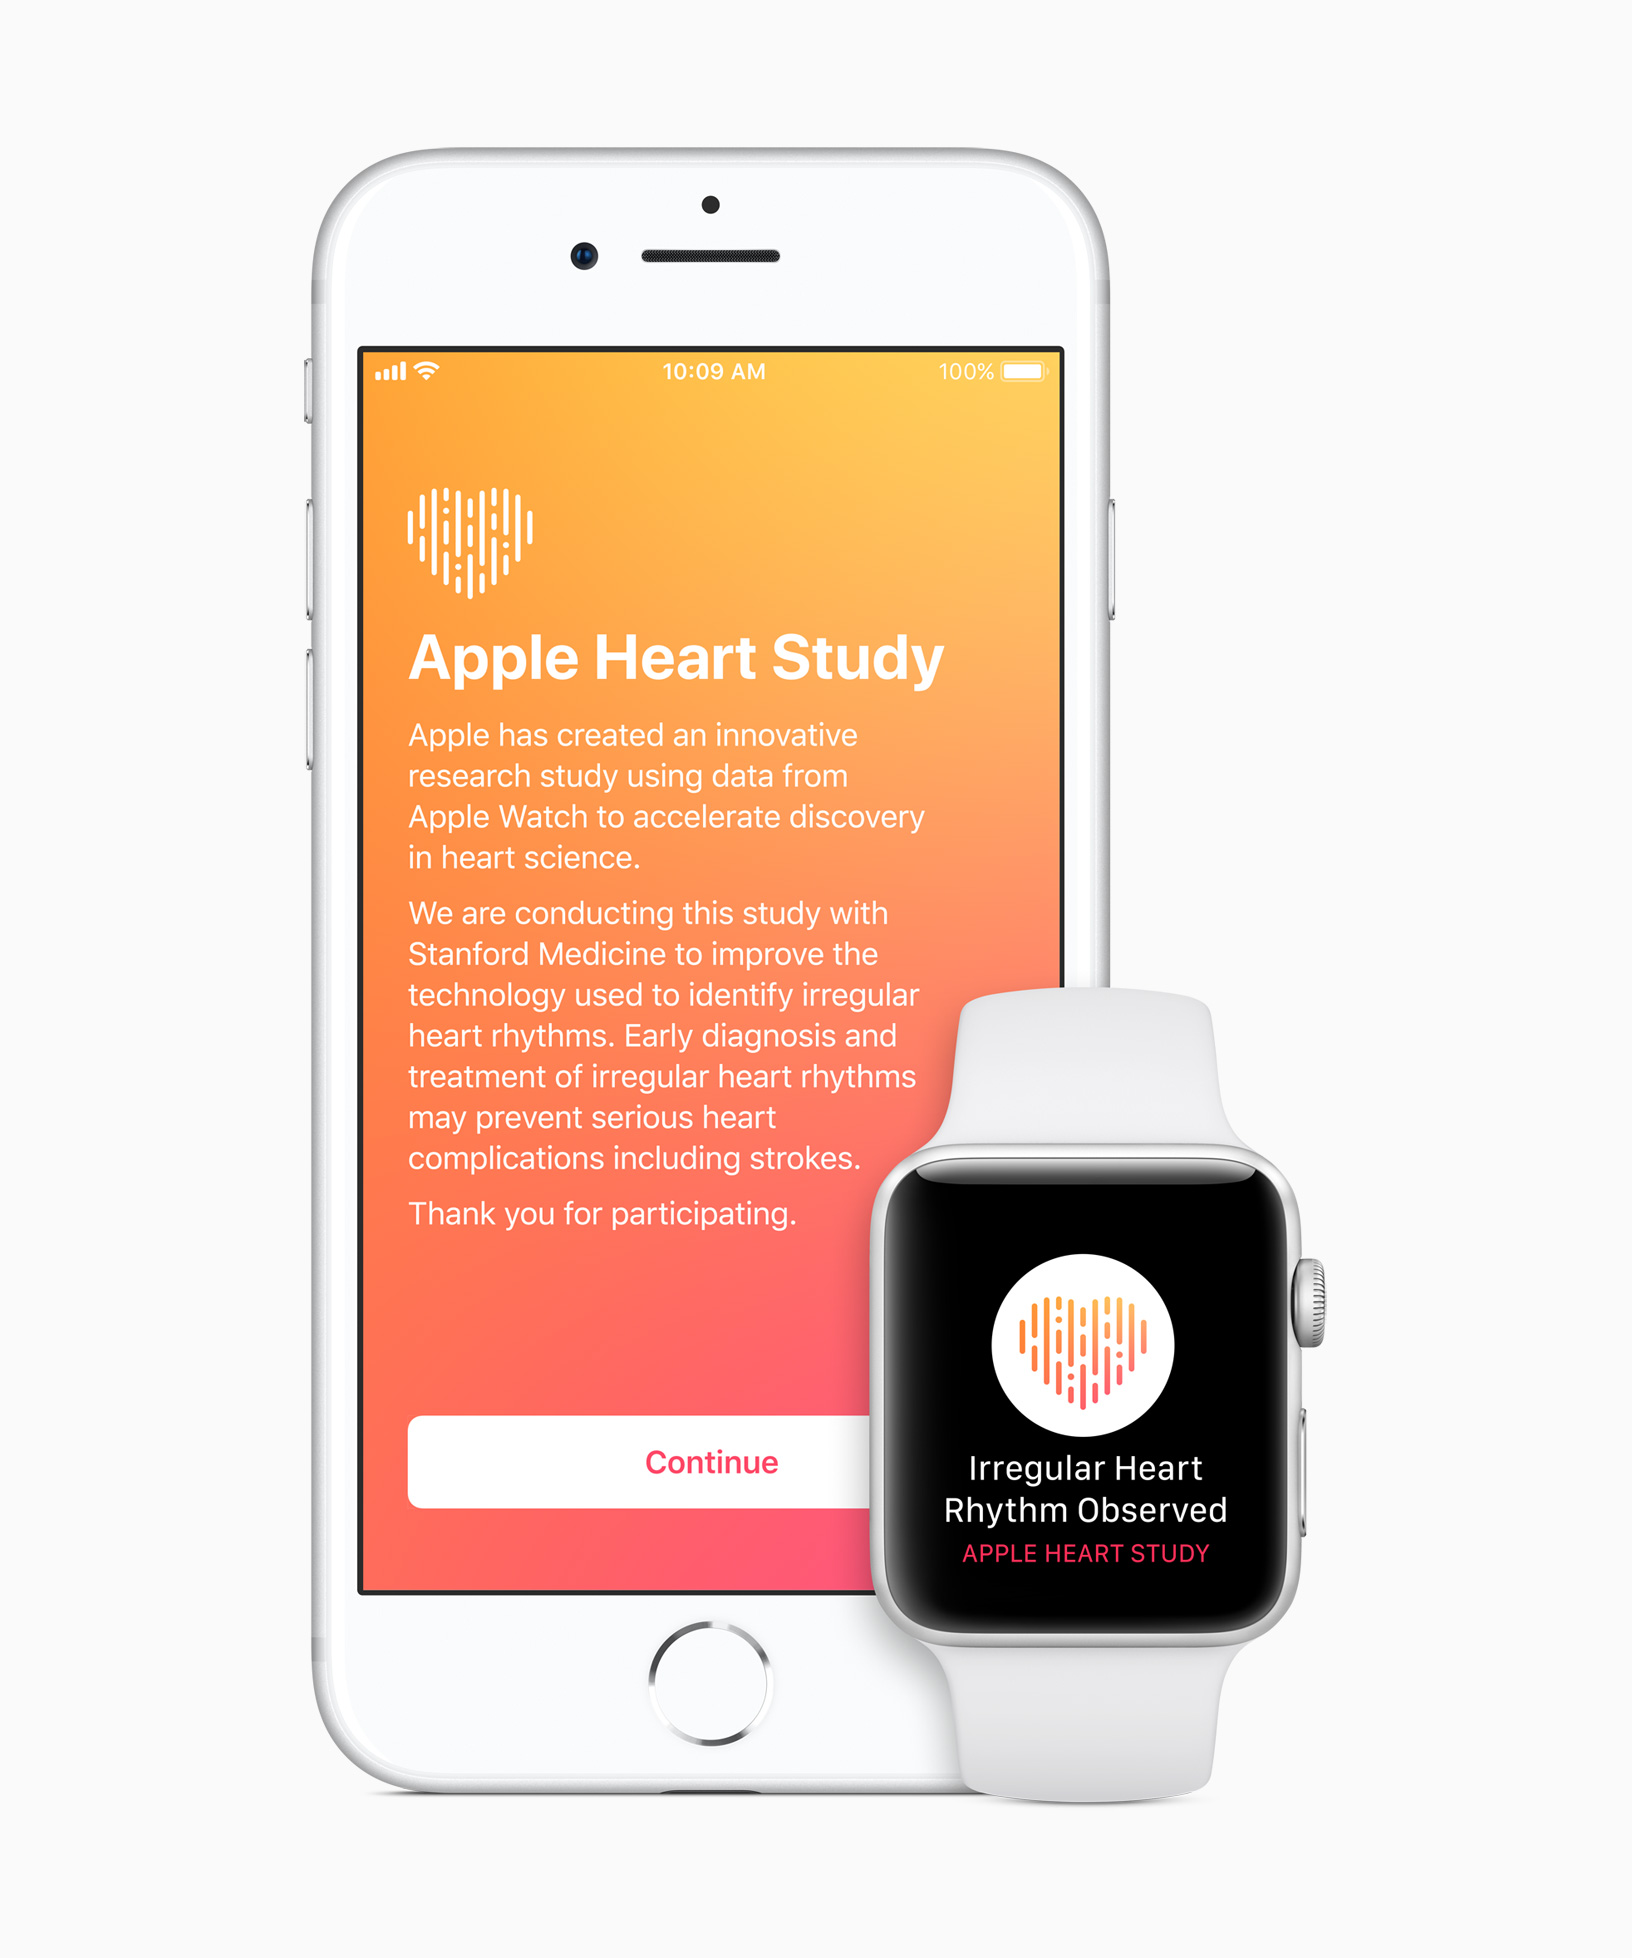 Kardiaband - FDA Approved Medical Device for Apple Watch